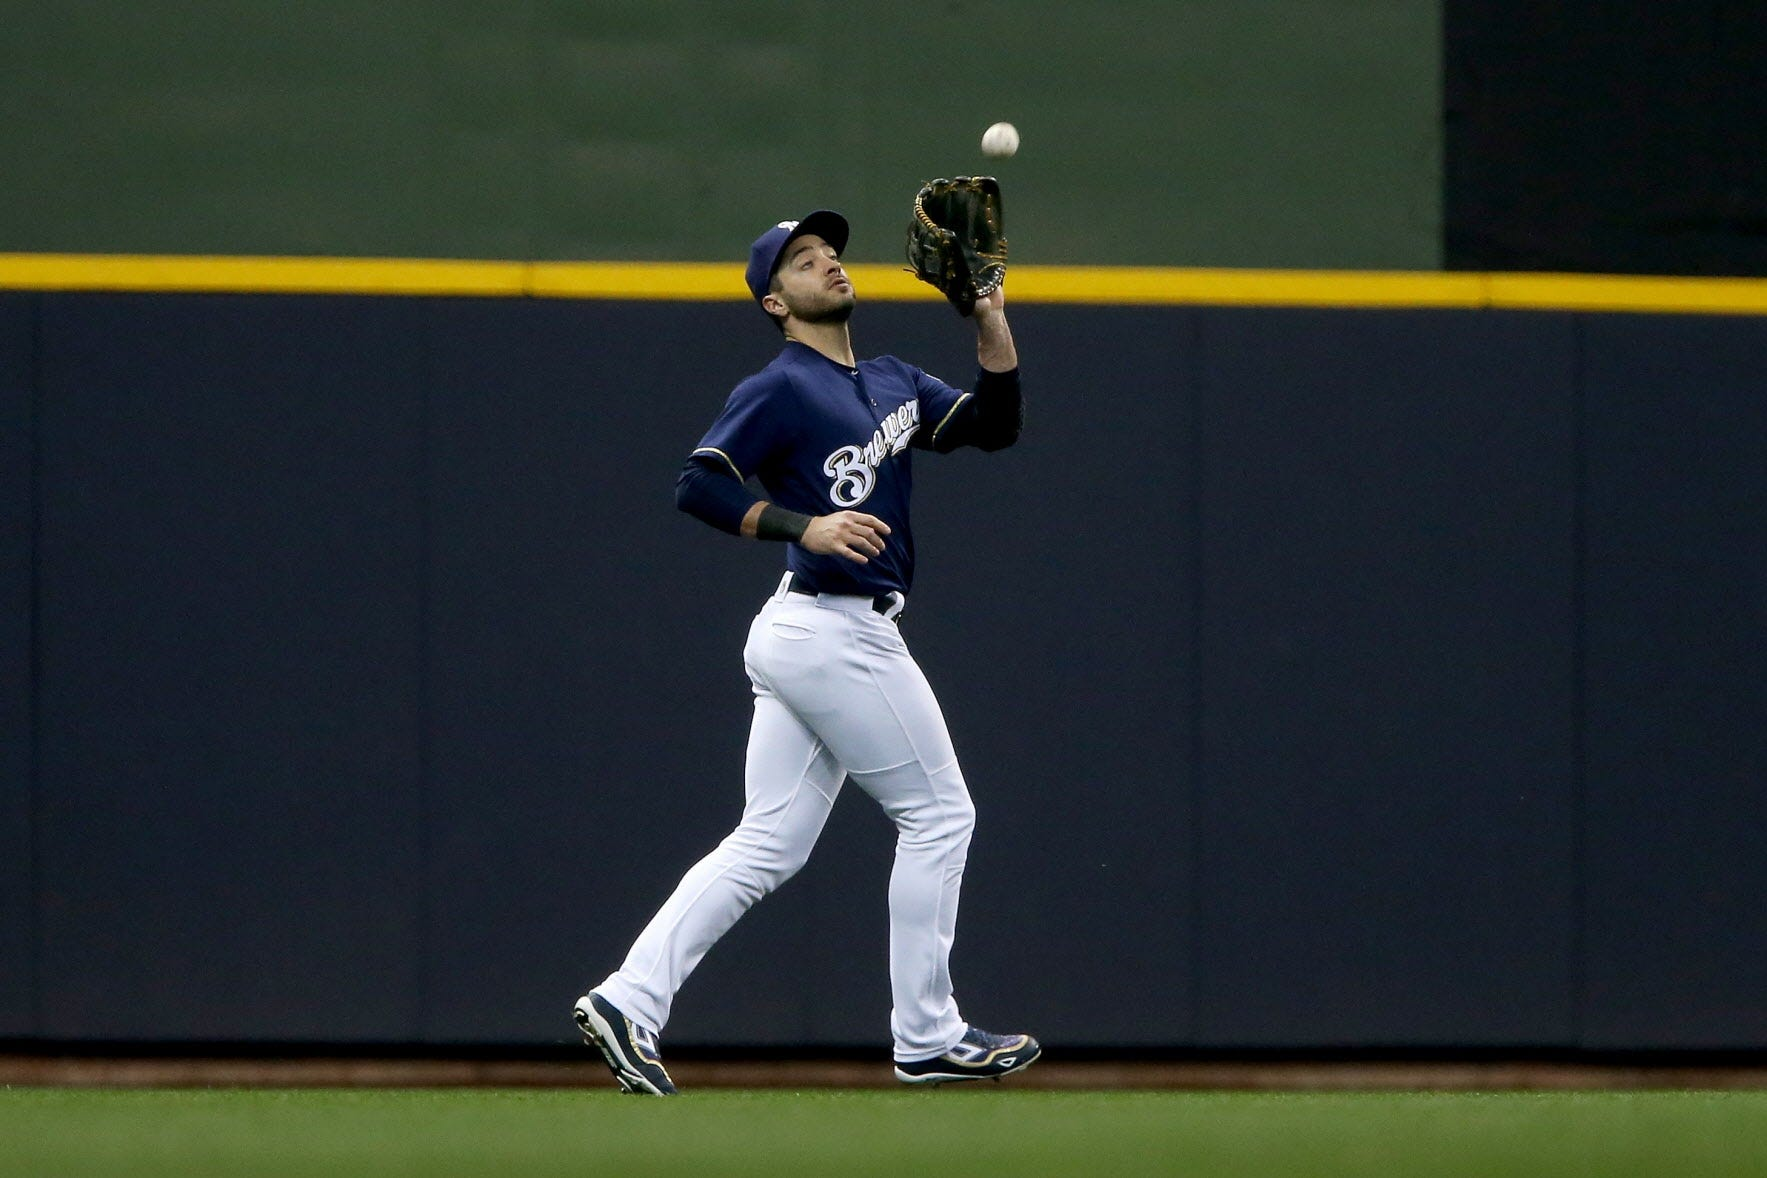 With Braun heading back to DL and a four-game losing streak, Brewers are facing adversity